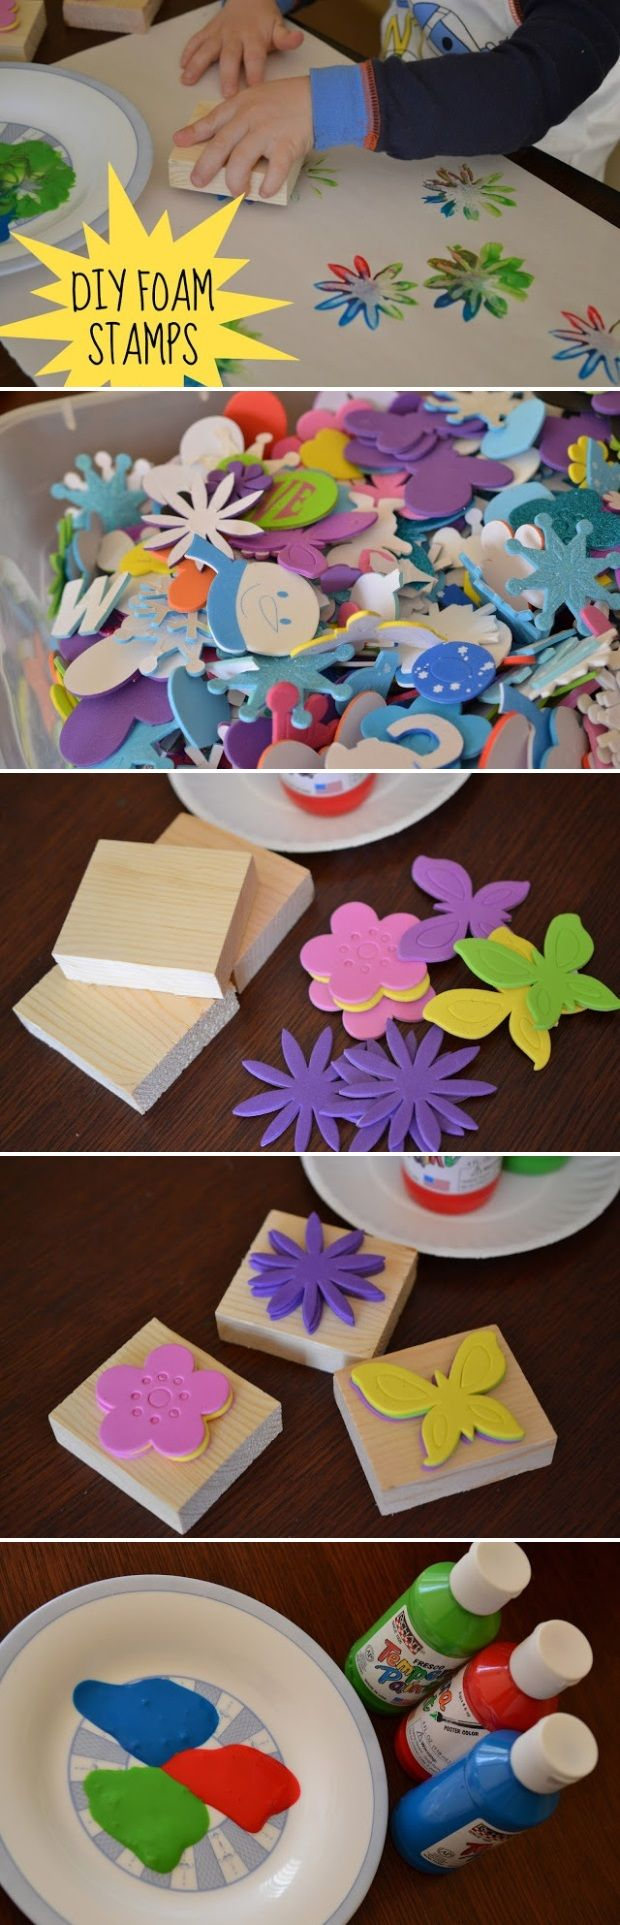 Fun to Try: DIY Wooden Crafts DIY Foam Stamps  I wonder if you could cut out the shapes with a Cricut?